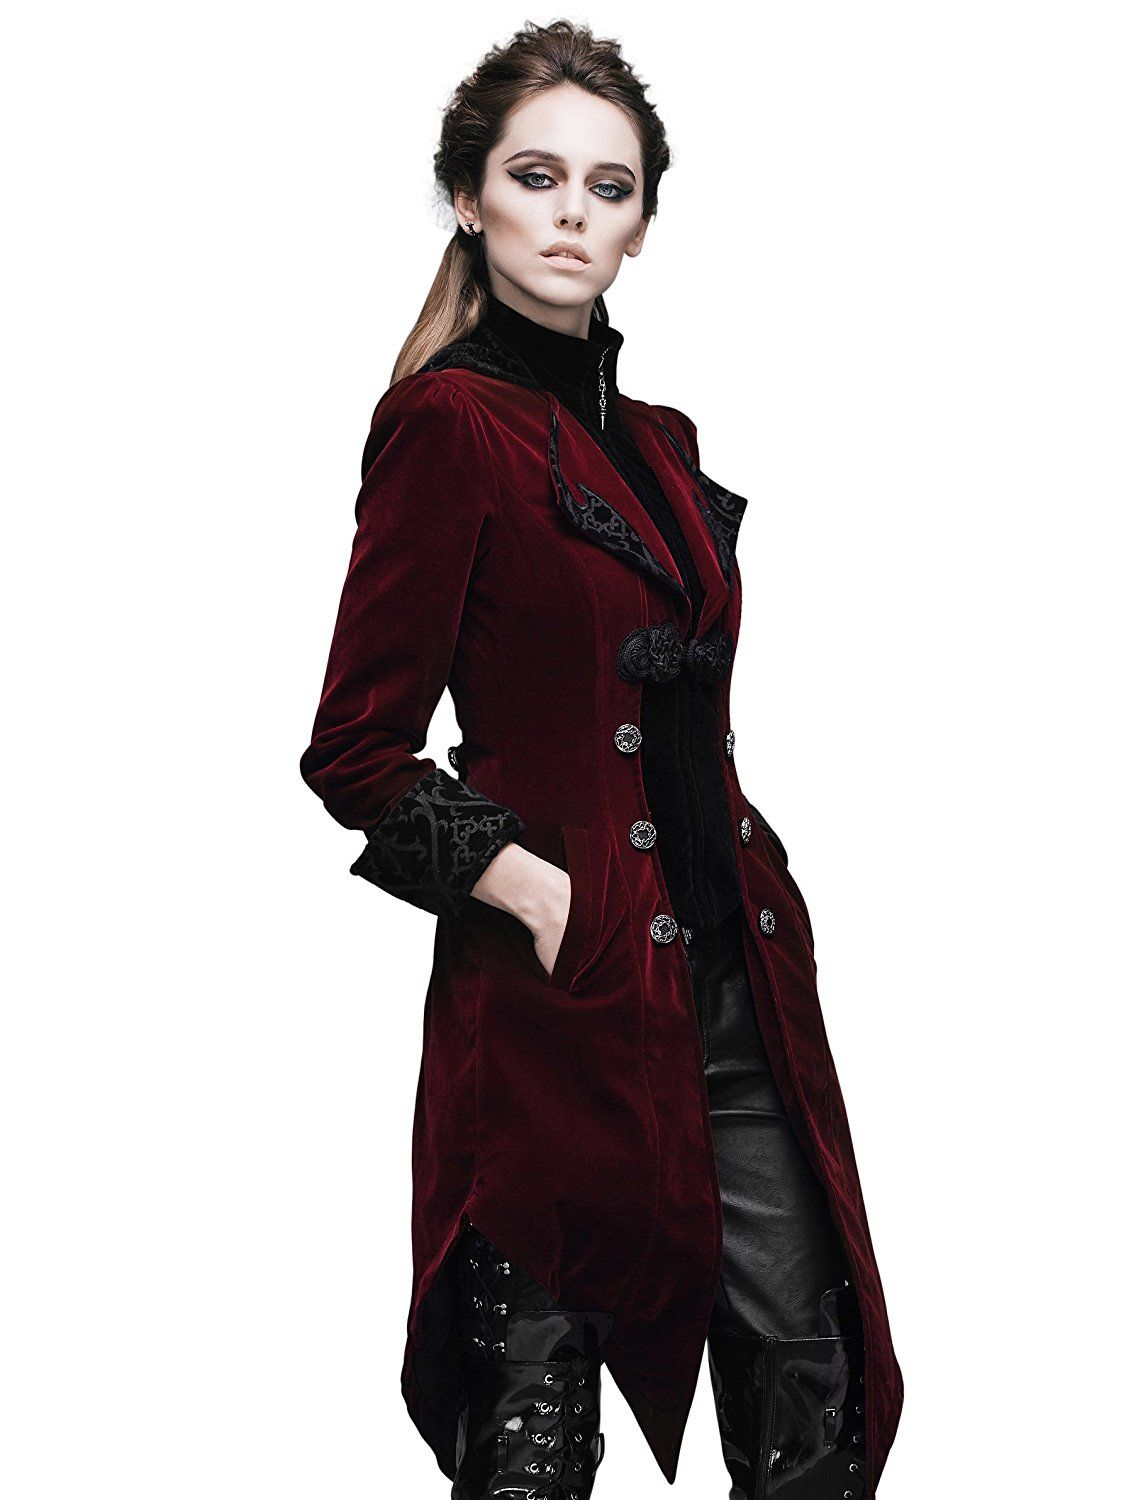 dc1cae4c86a Deluxe Adult Costumes - Women s burgandy poly-velvet swallowtail pirate  captain coat